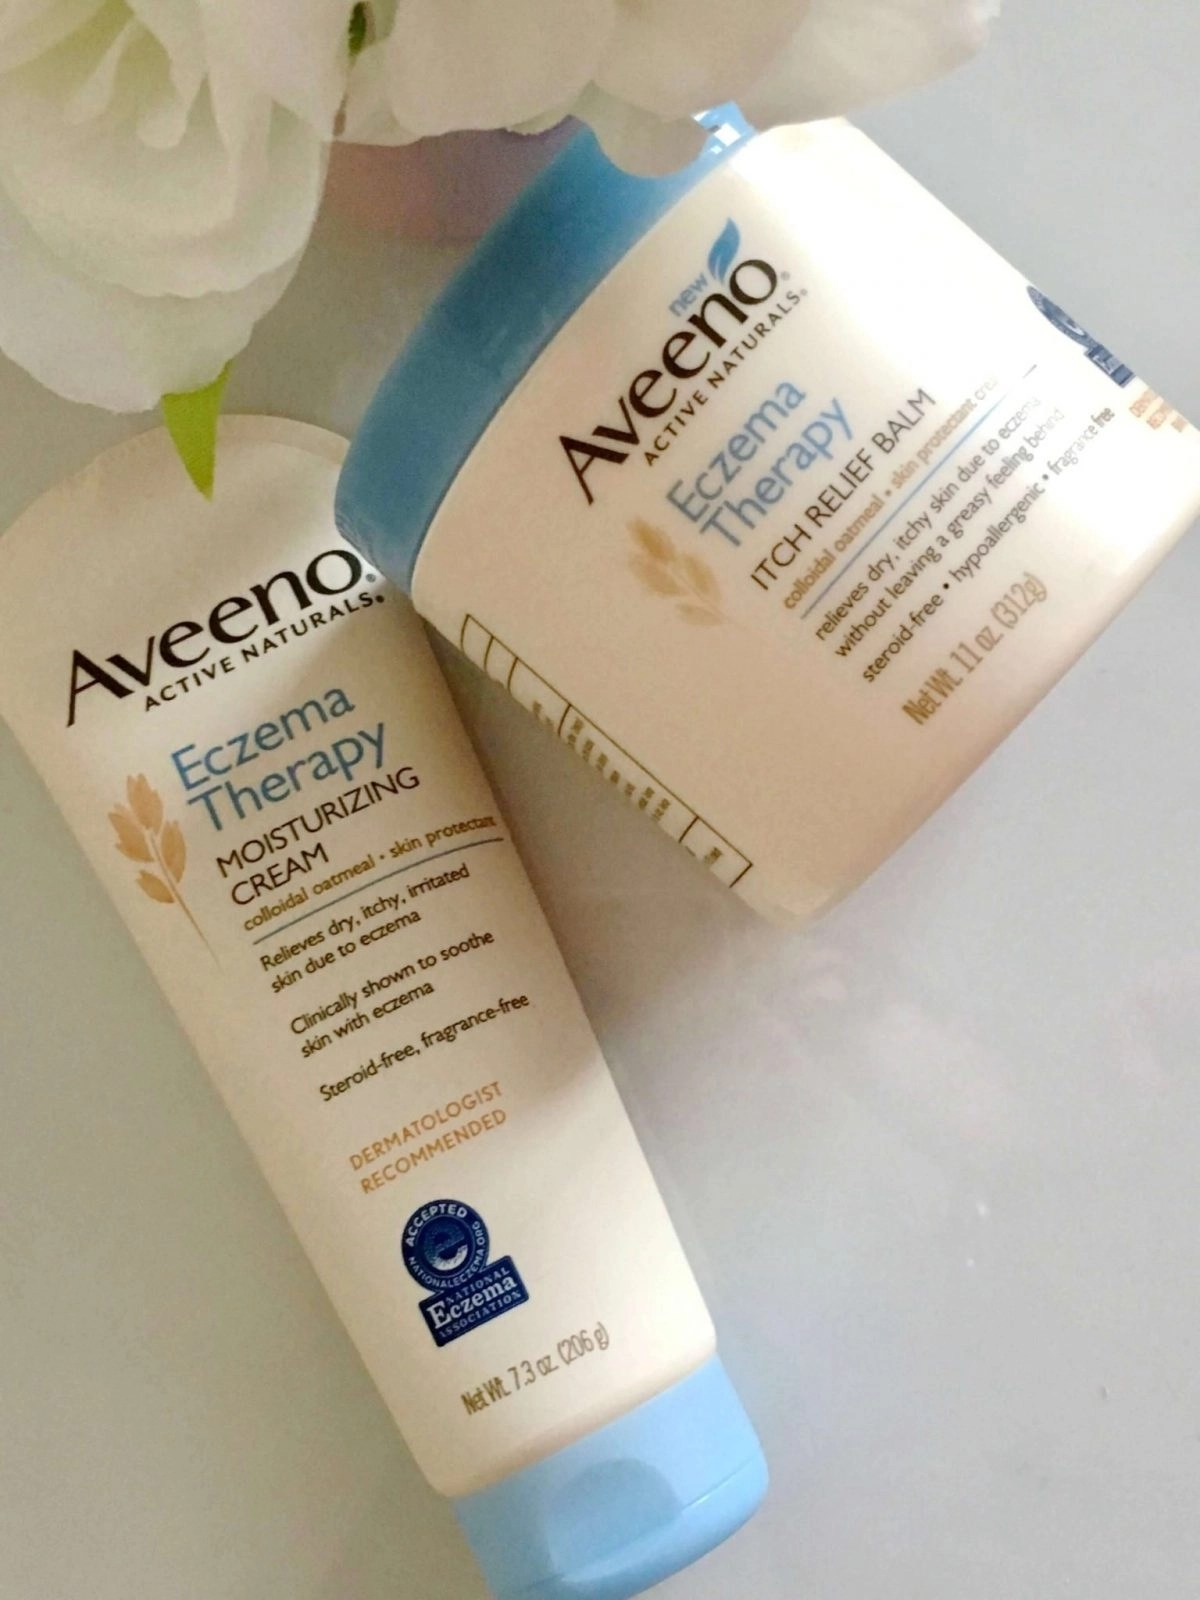 Aveeno Eczema Therapy Products